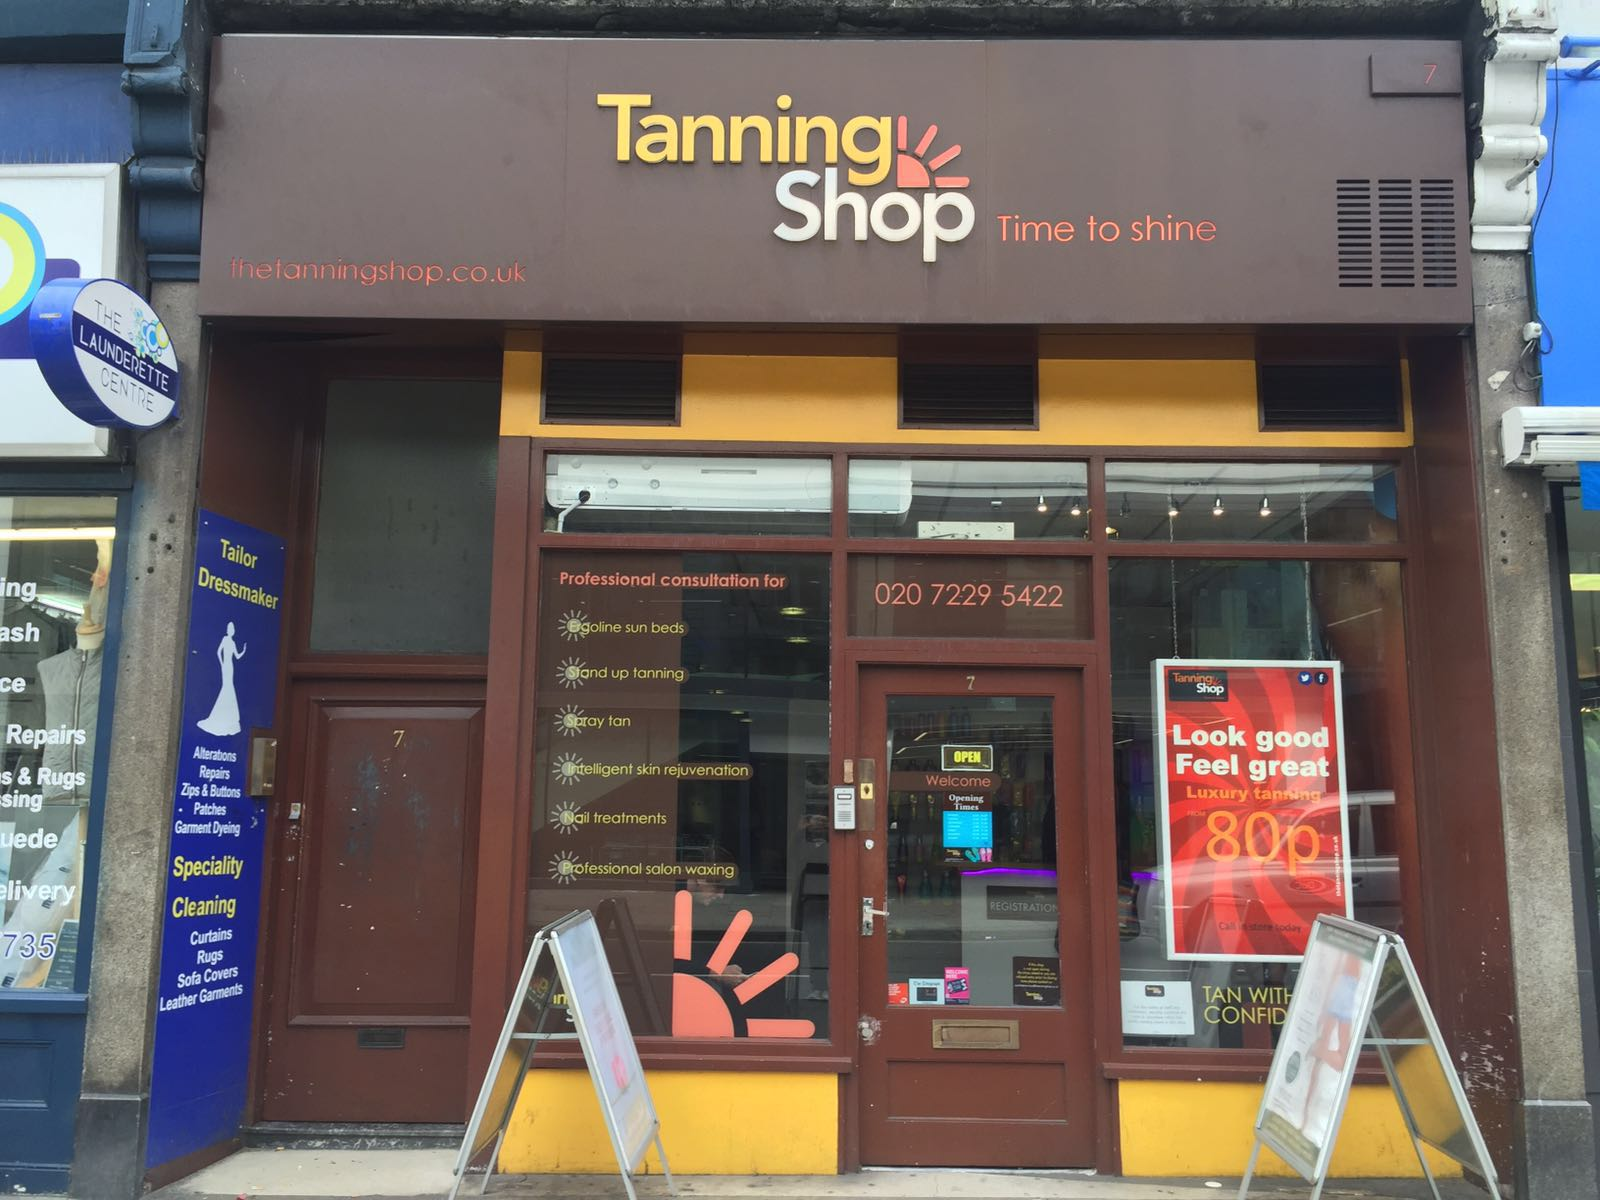 Thank you - The Tanning Shop